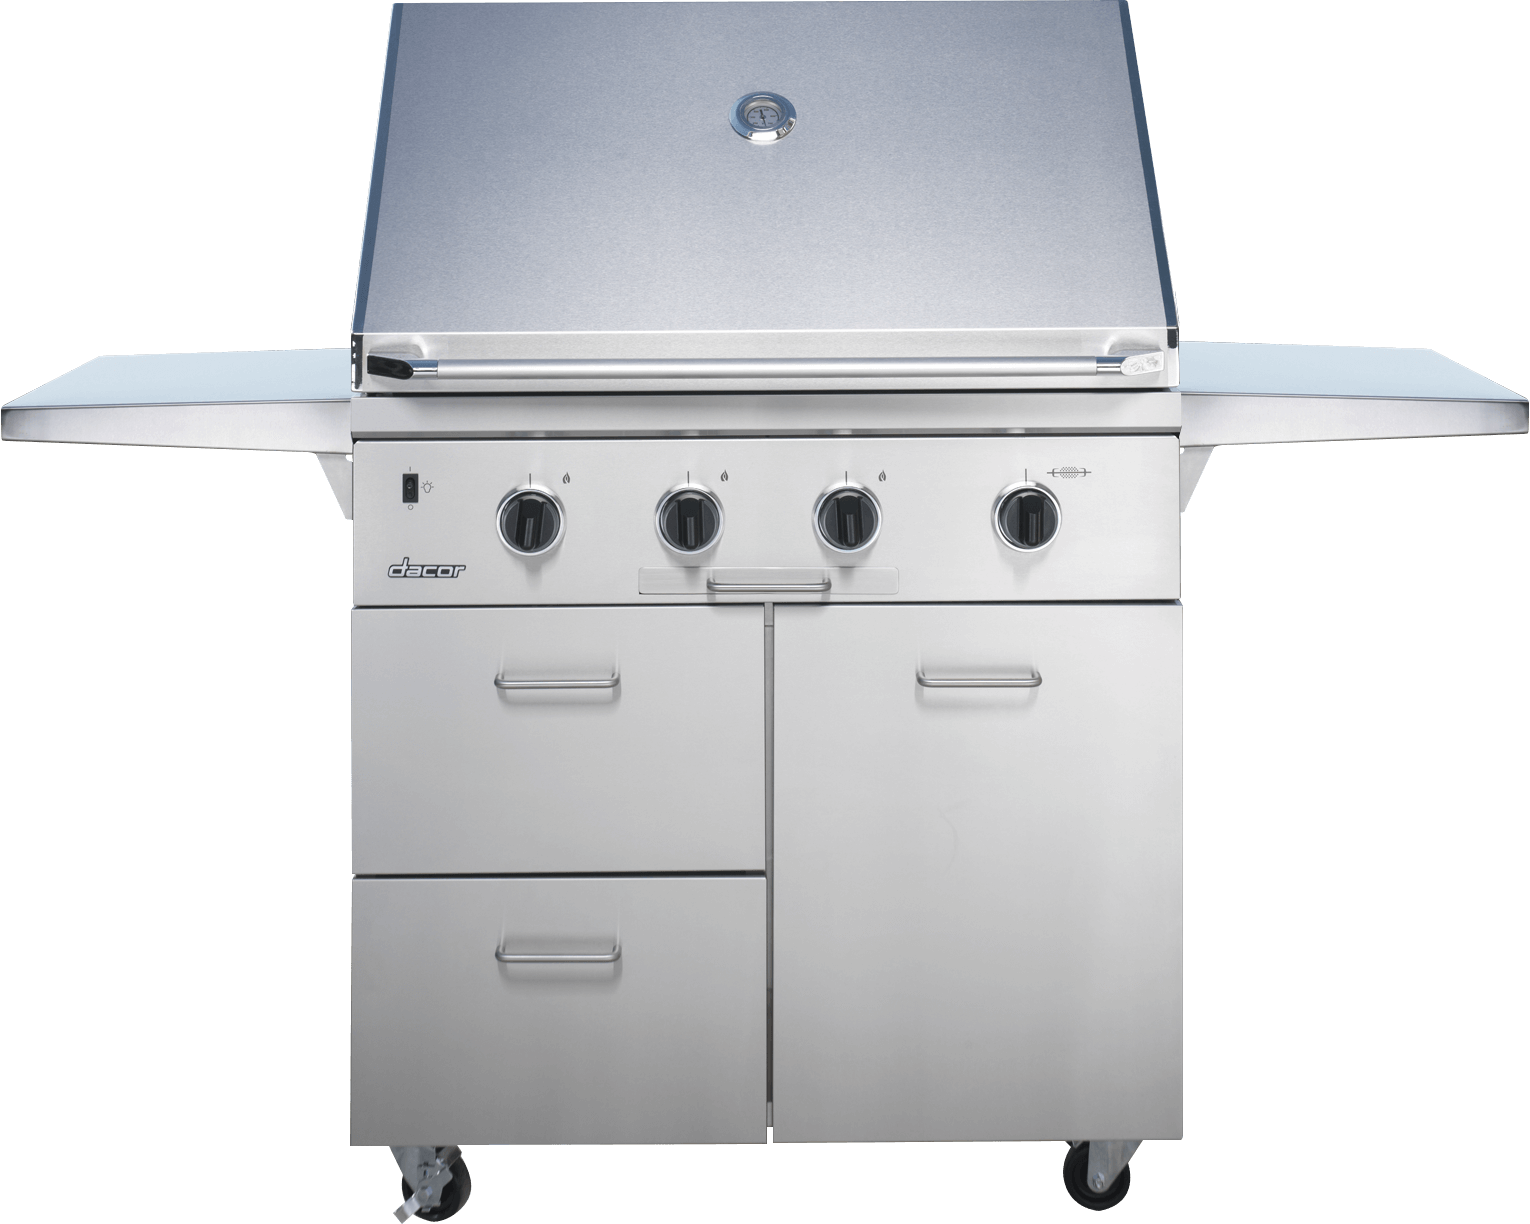 A silver stainless steel Dacor oven range.